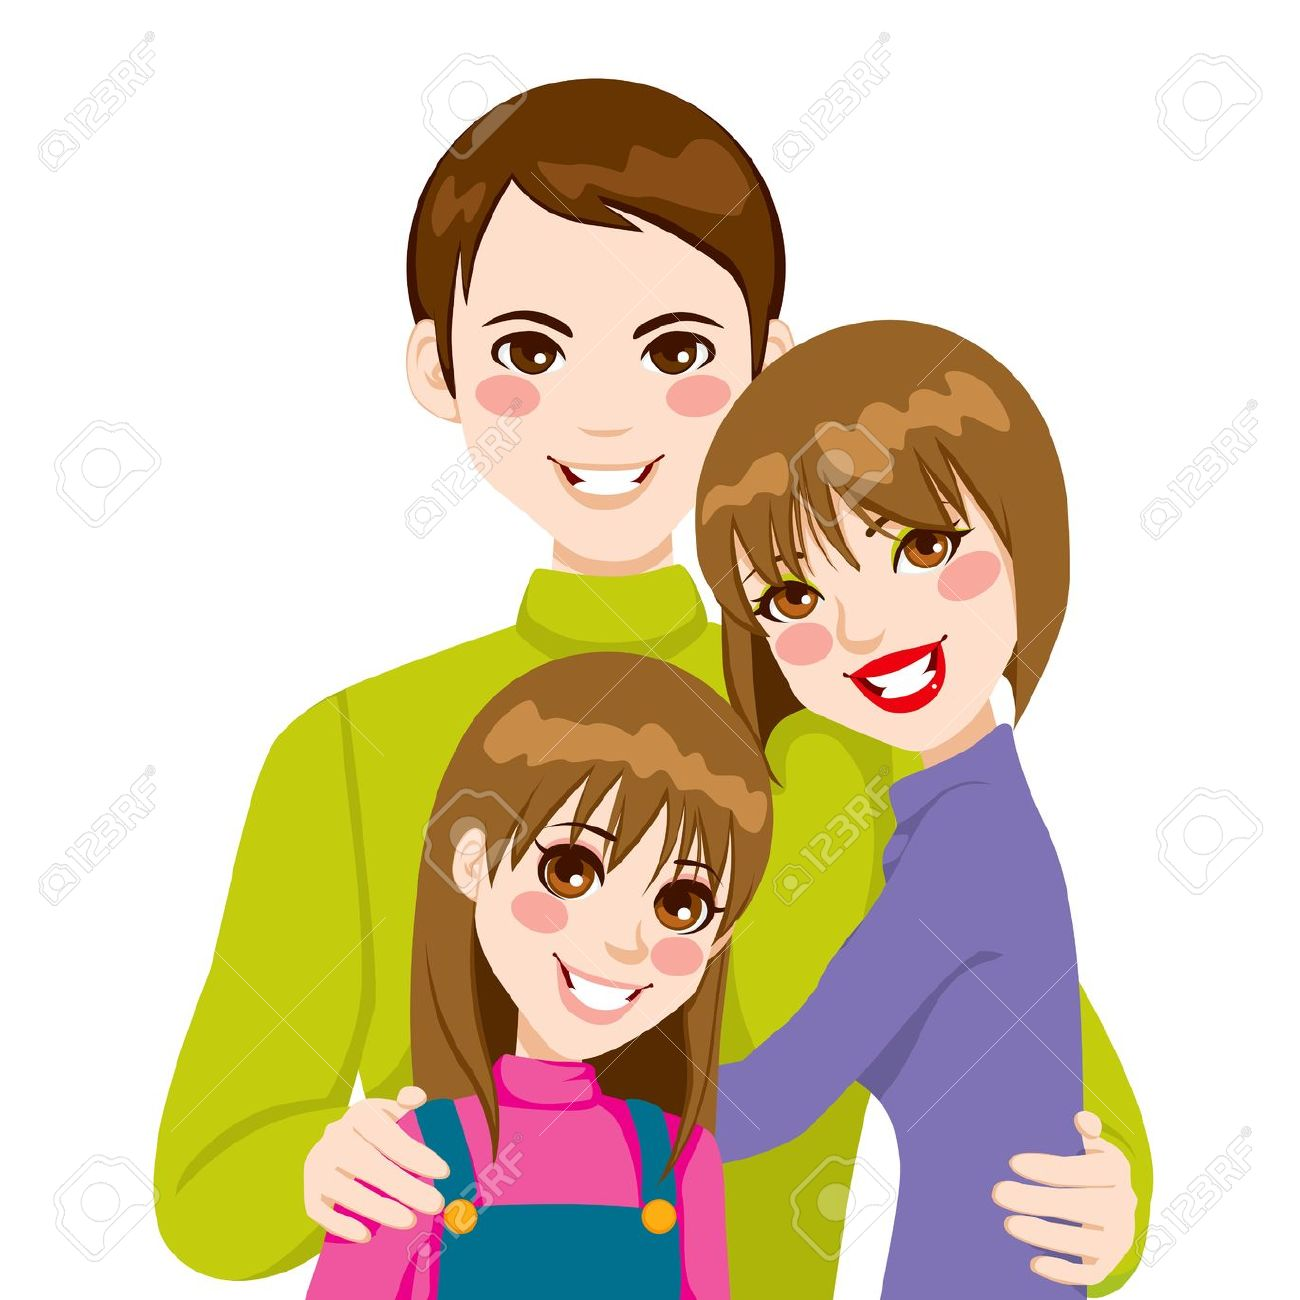 clipart boy hugging parent - Clipground Hugging Family Clipart